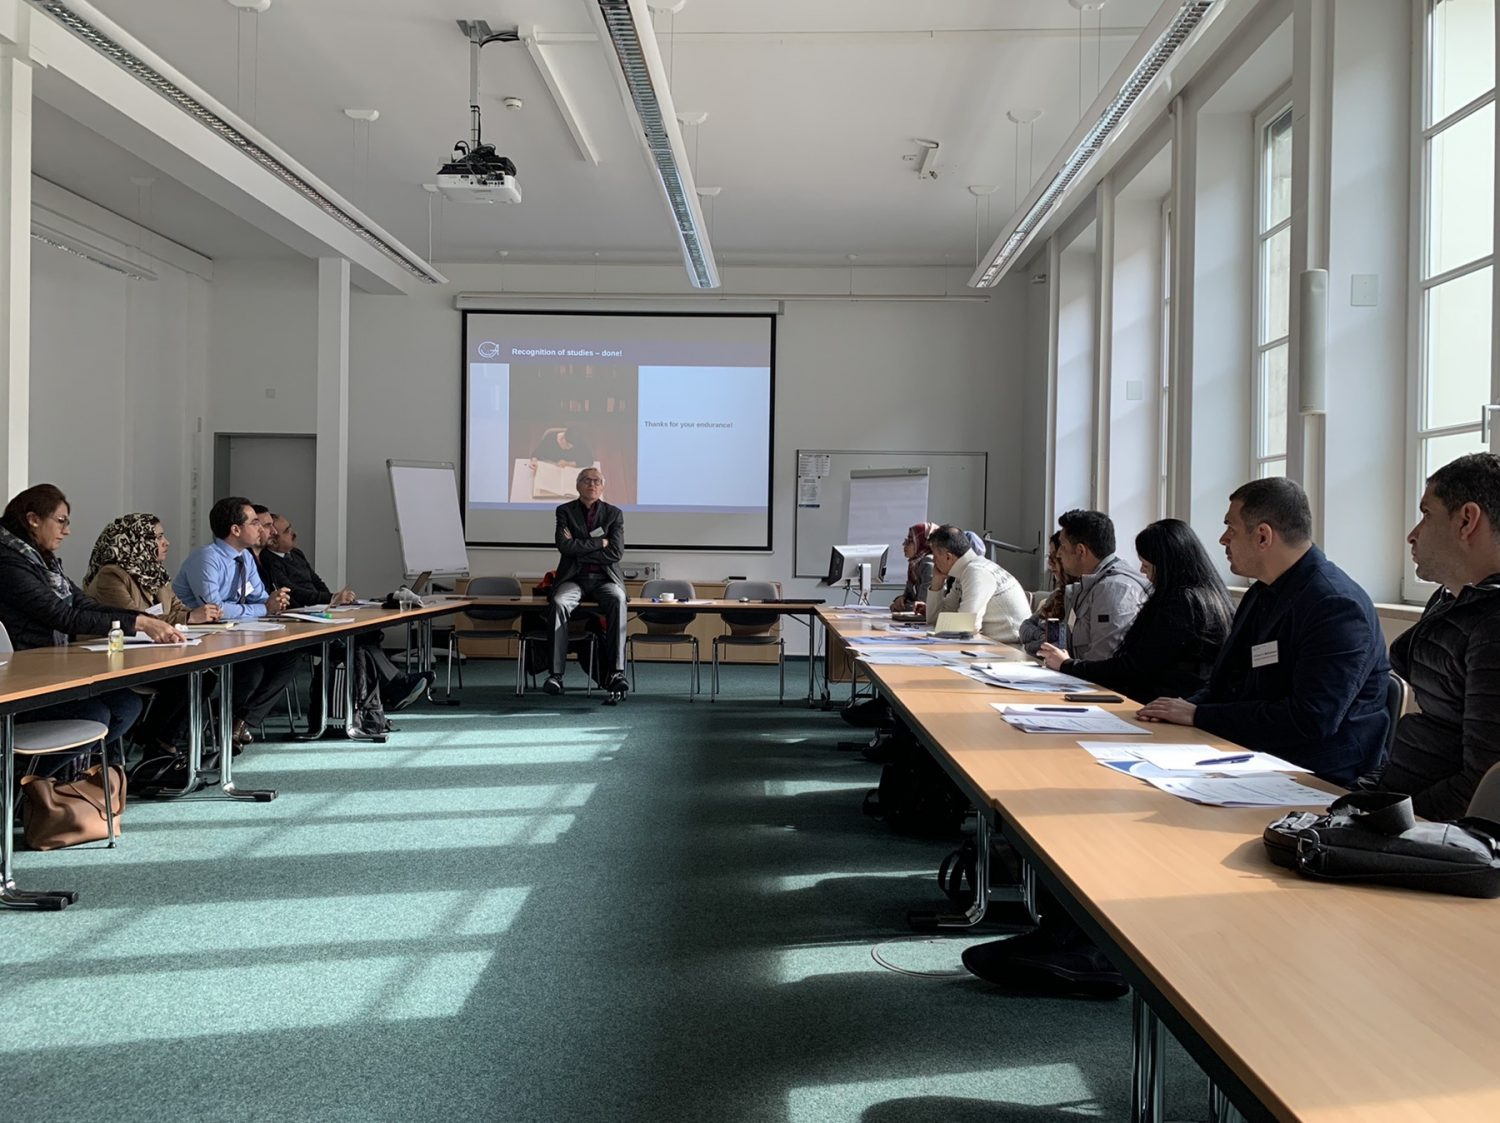 A Delegation of Erbil Polytechnic University participates in a training course at the International University of Göttingen in Germany